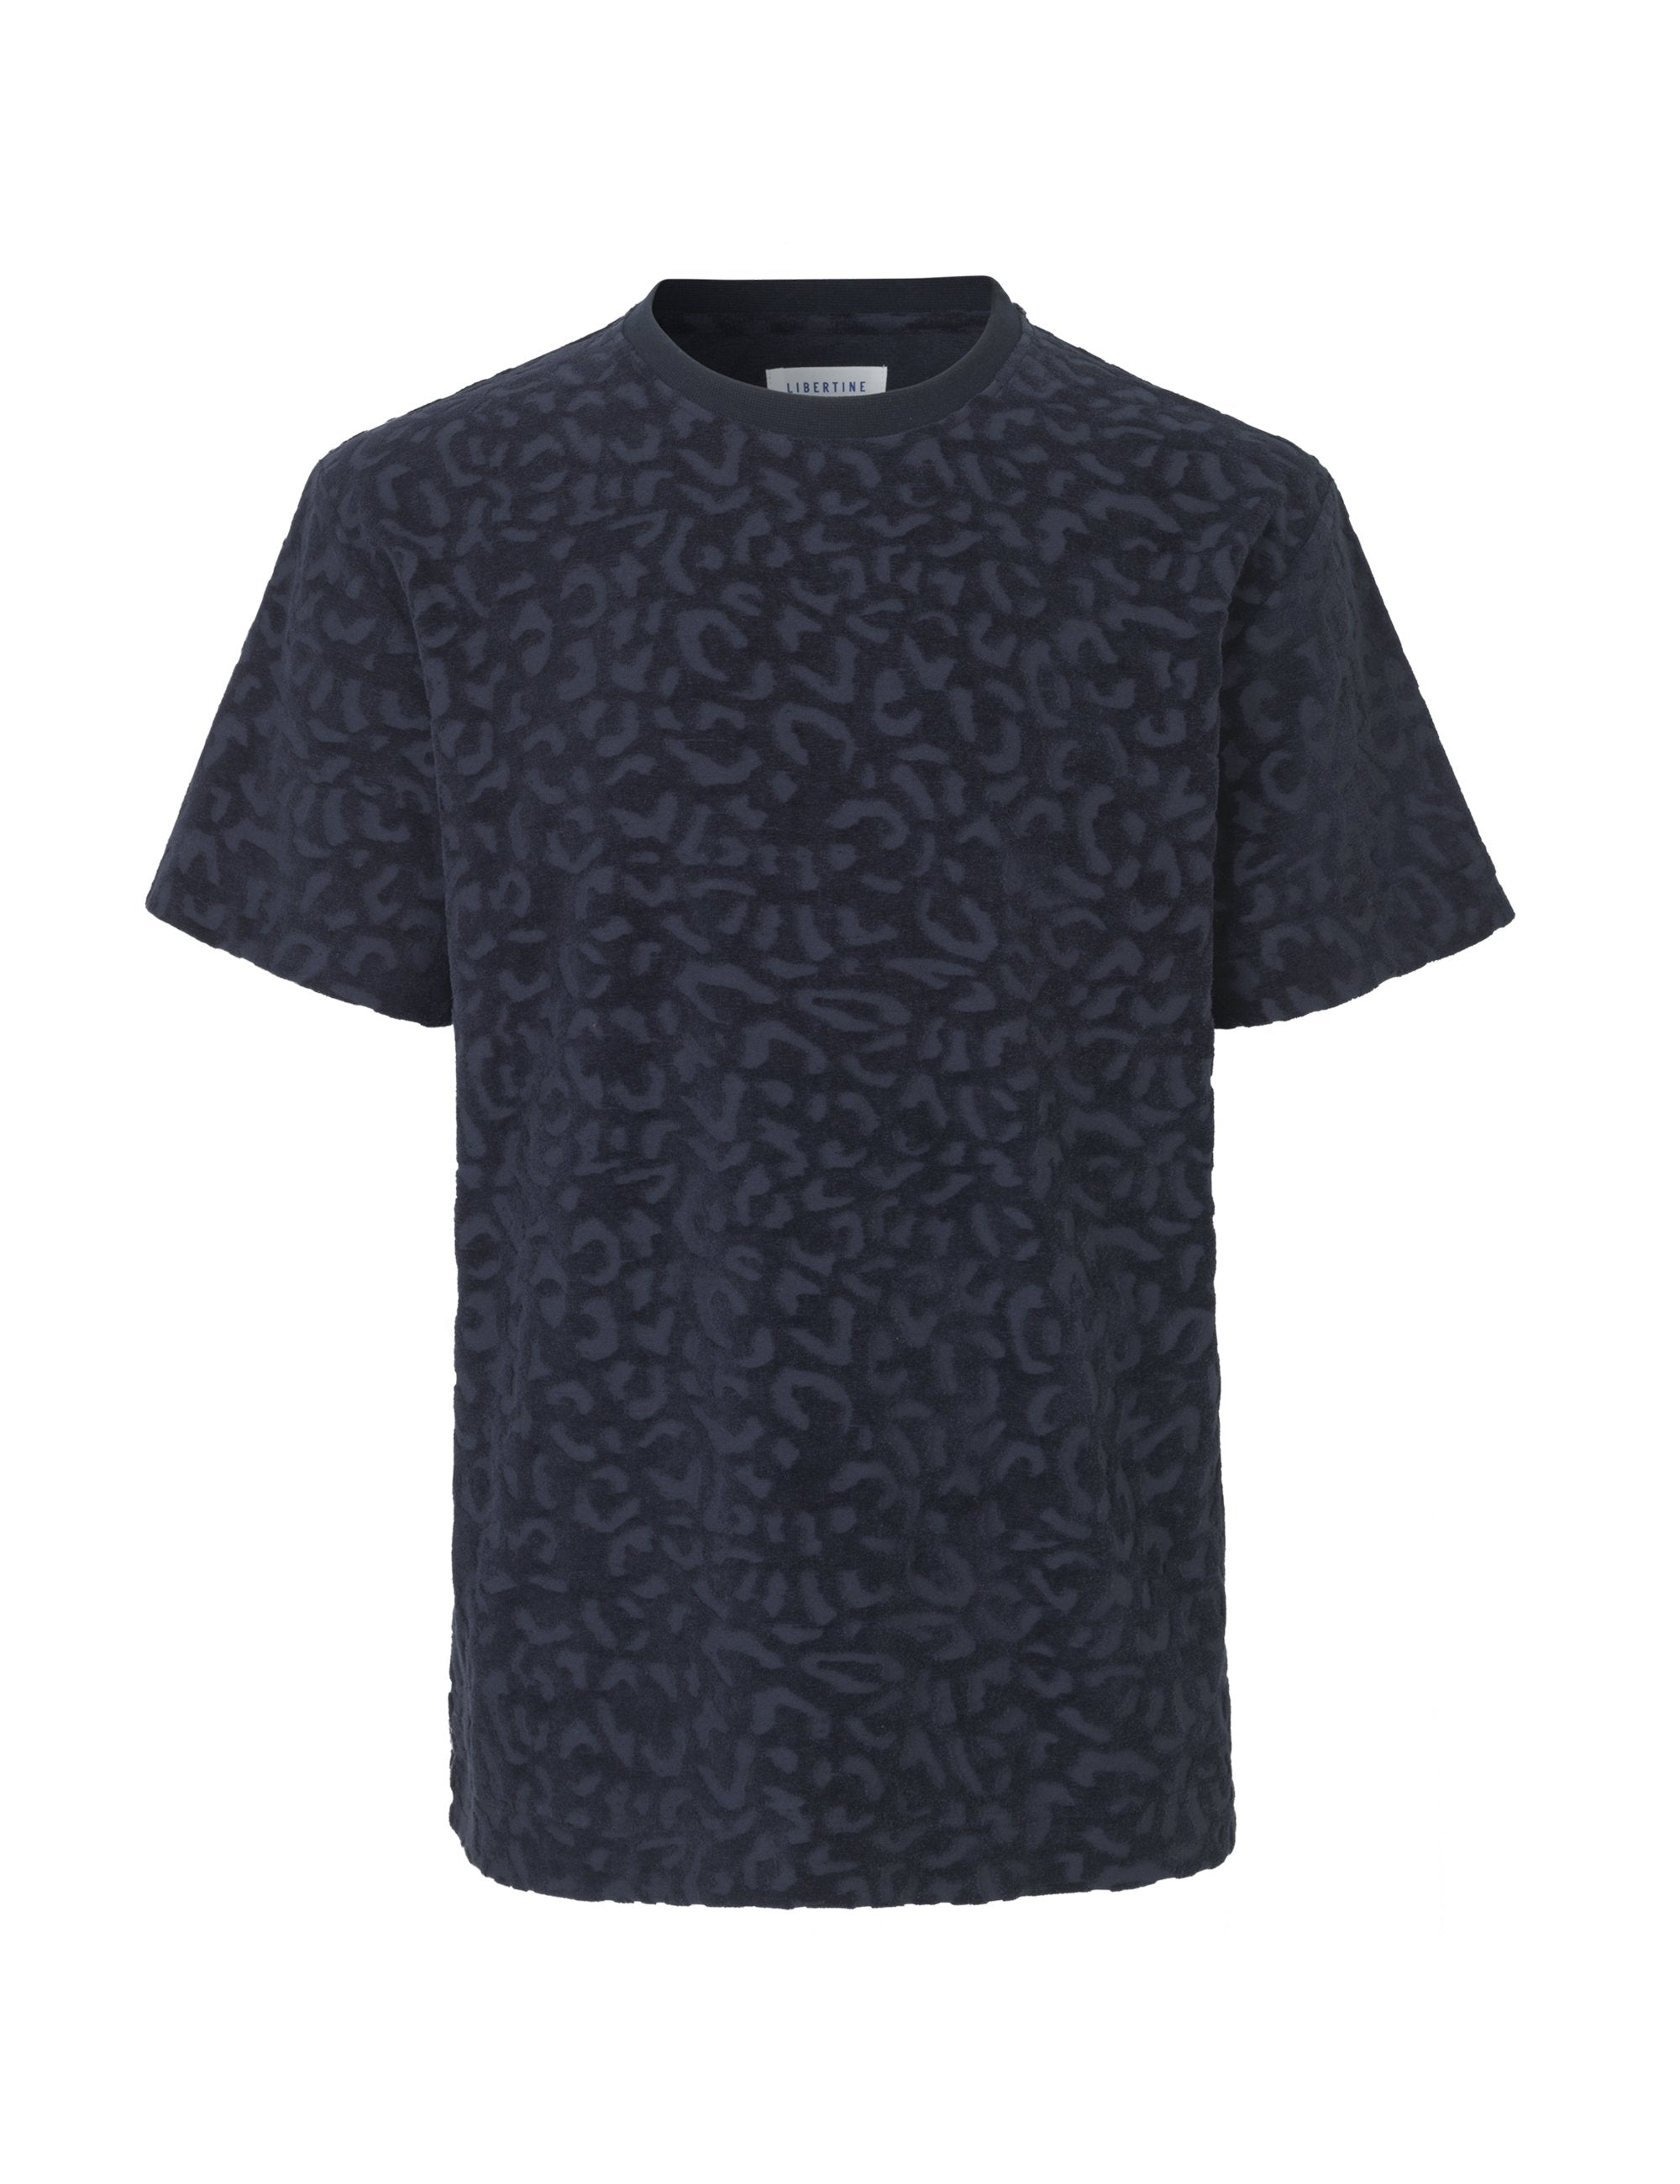 Libertine Libertine - Cut Out T Shirt - Navy